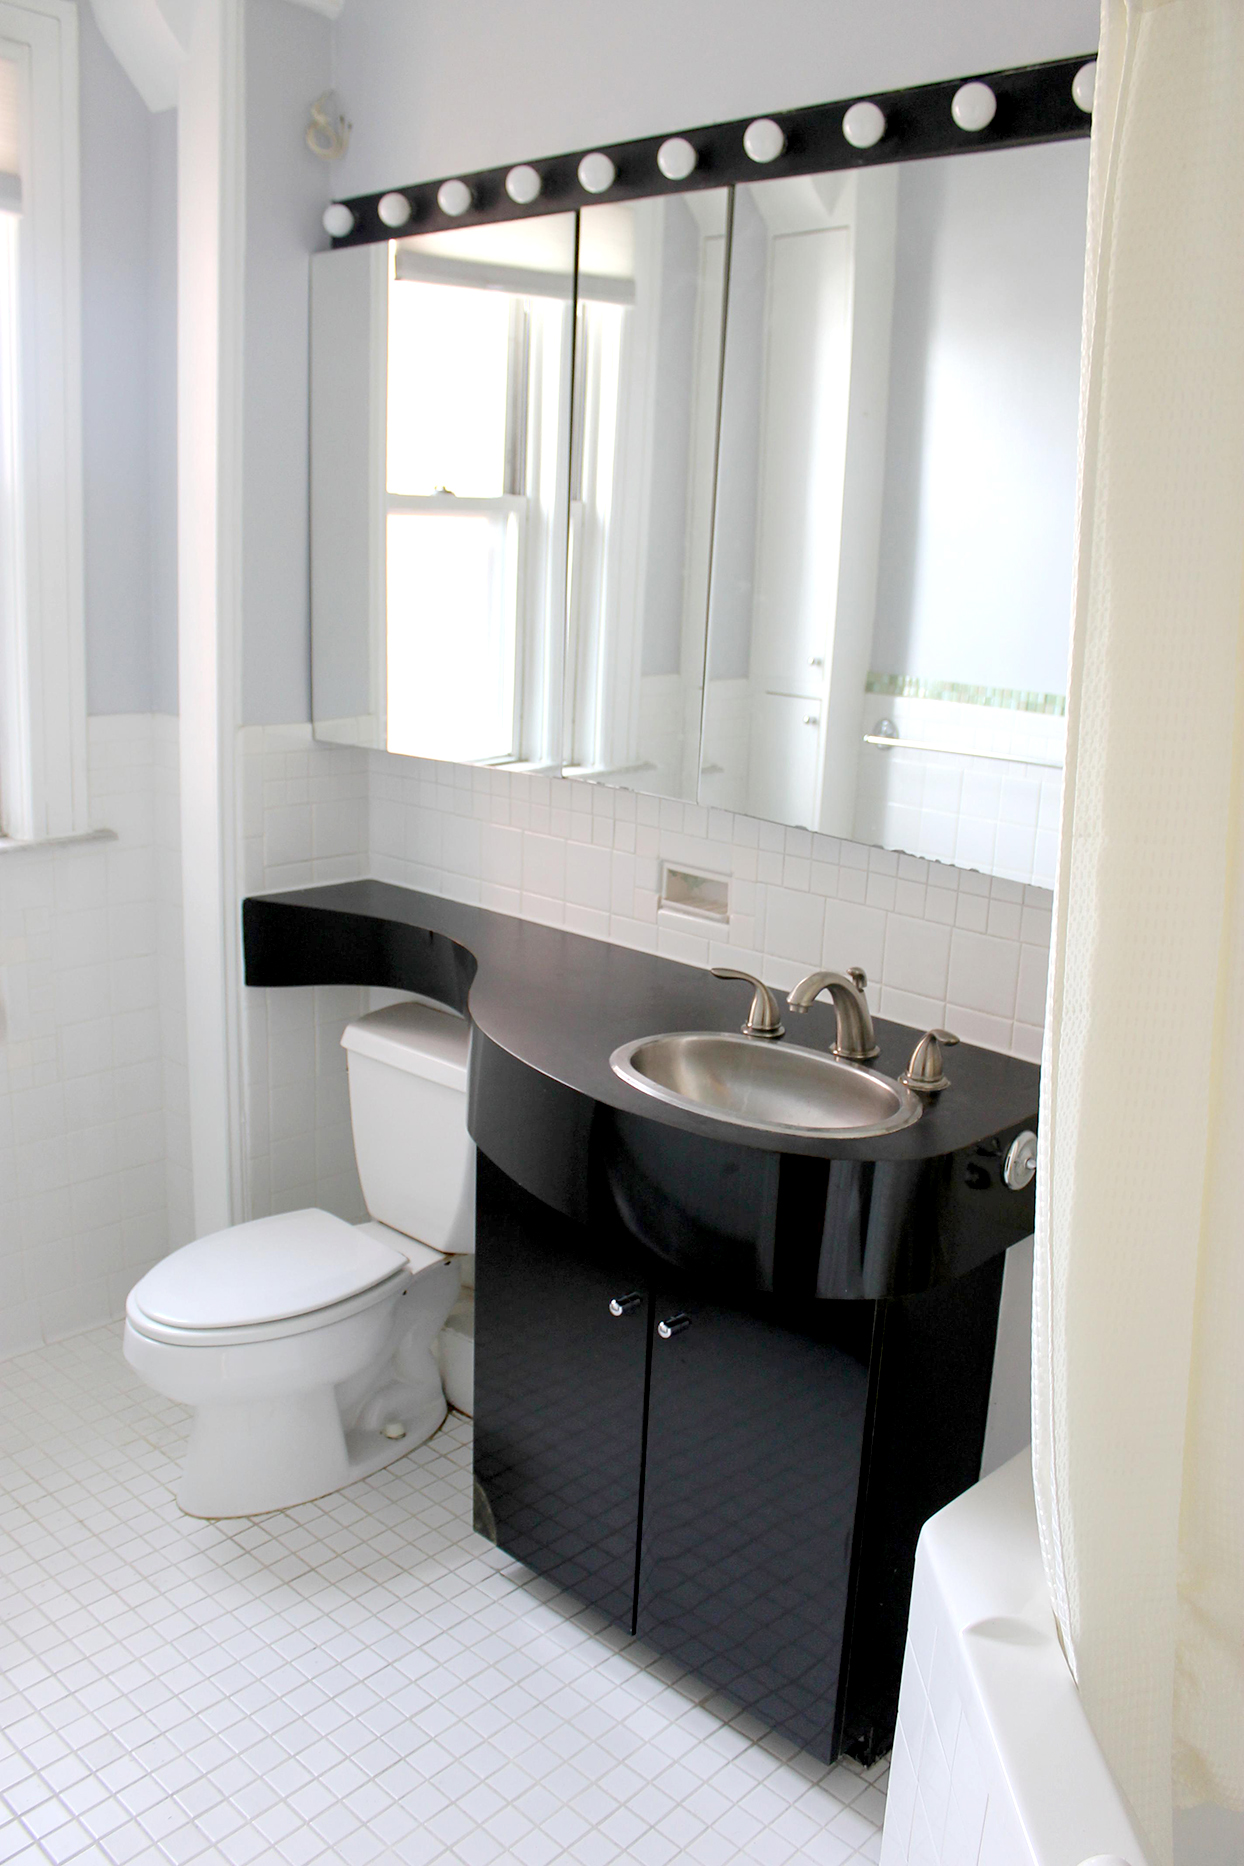 Bathroom with white tile floor and black sink